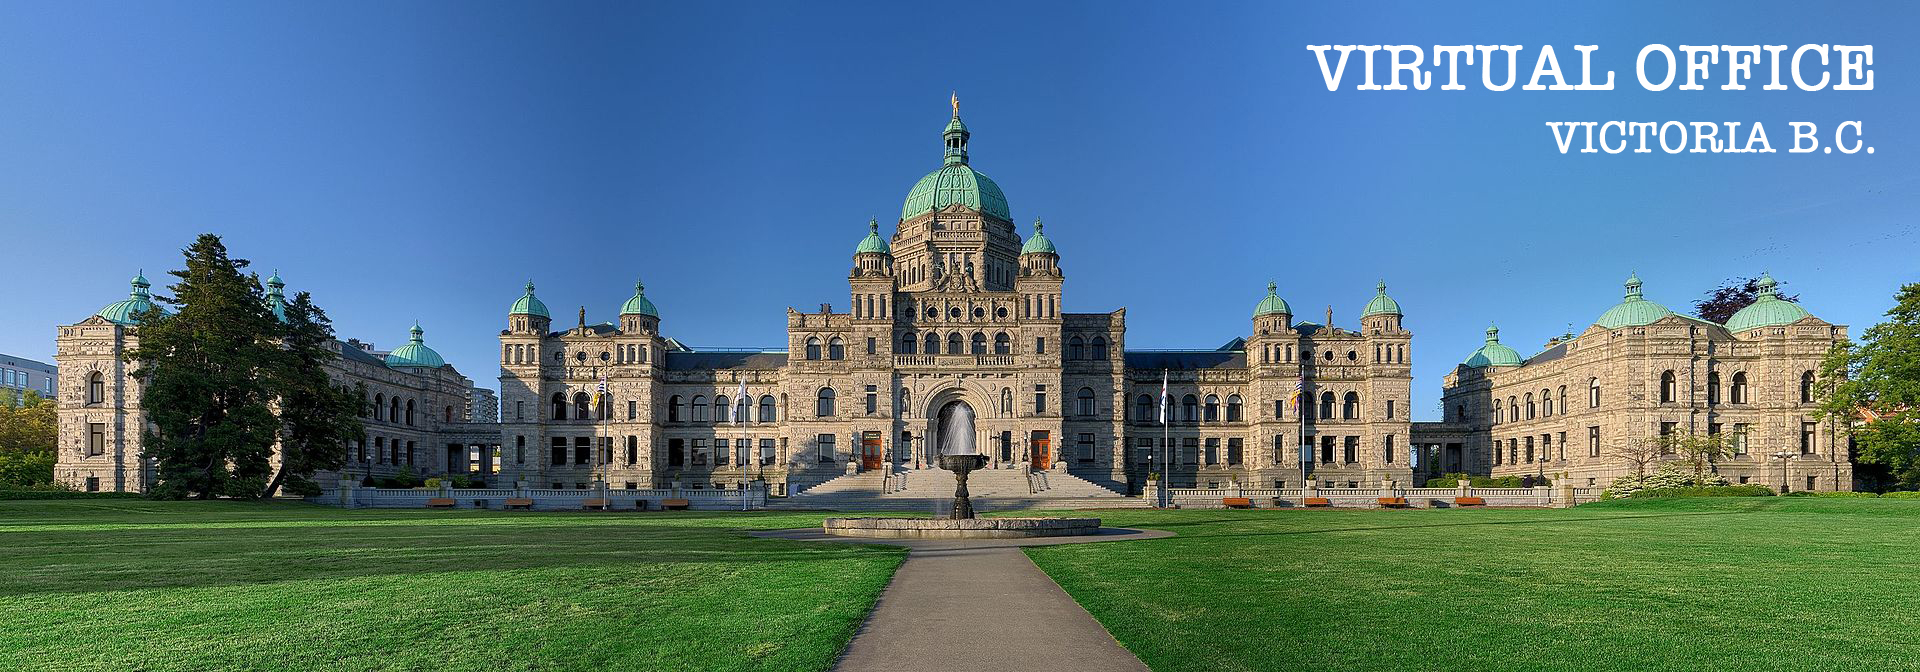 Victoria BC Virtual Office